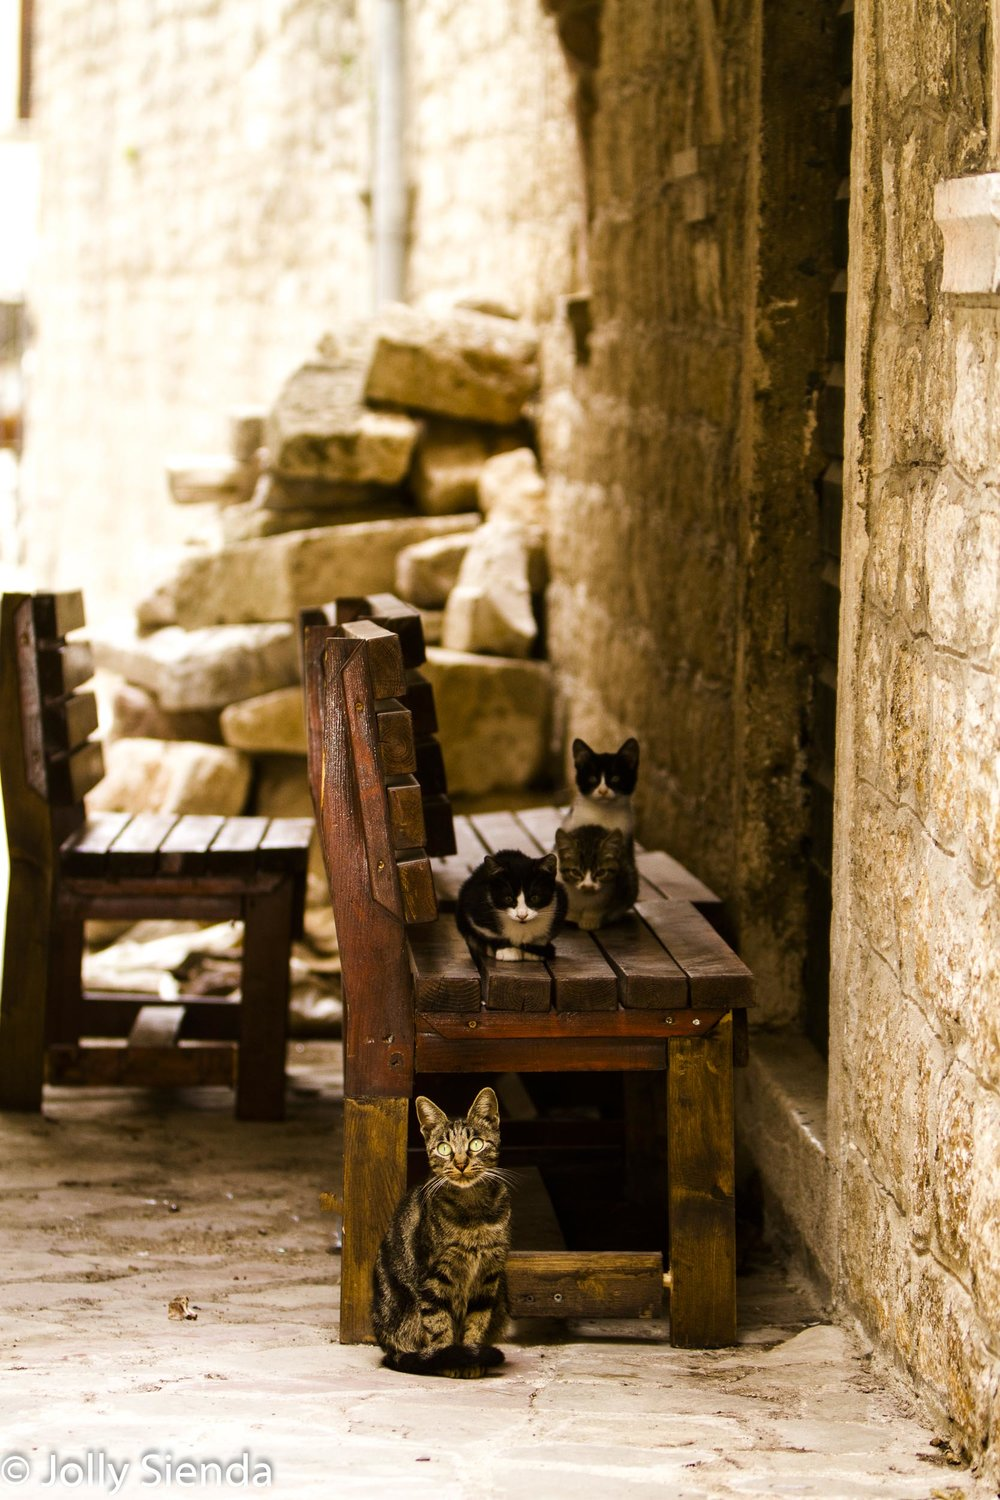 Kittens sit on a bench, while the mother cat stands guard